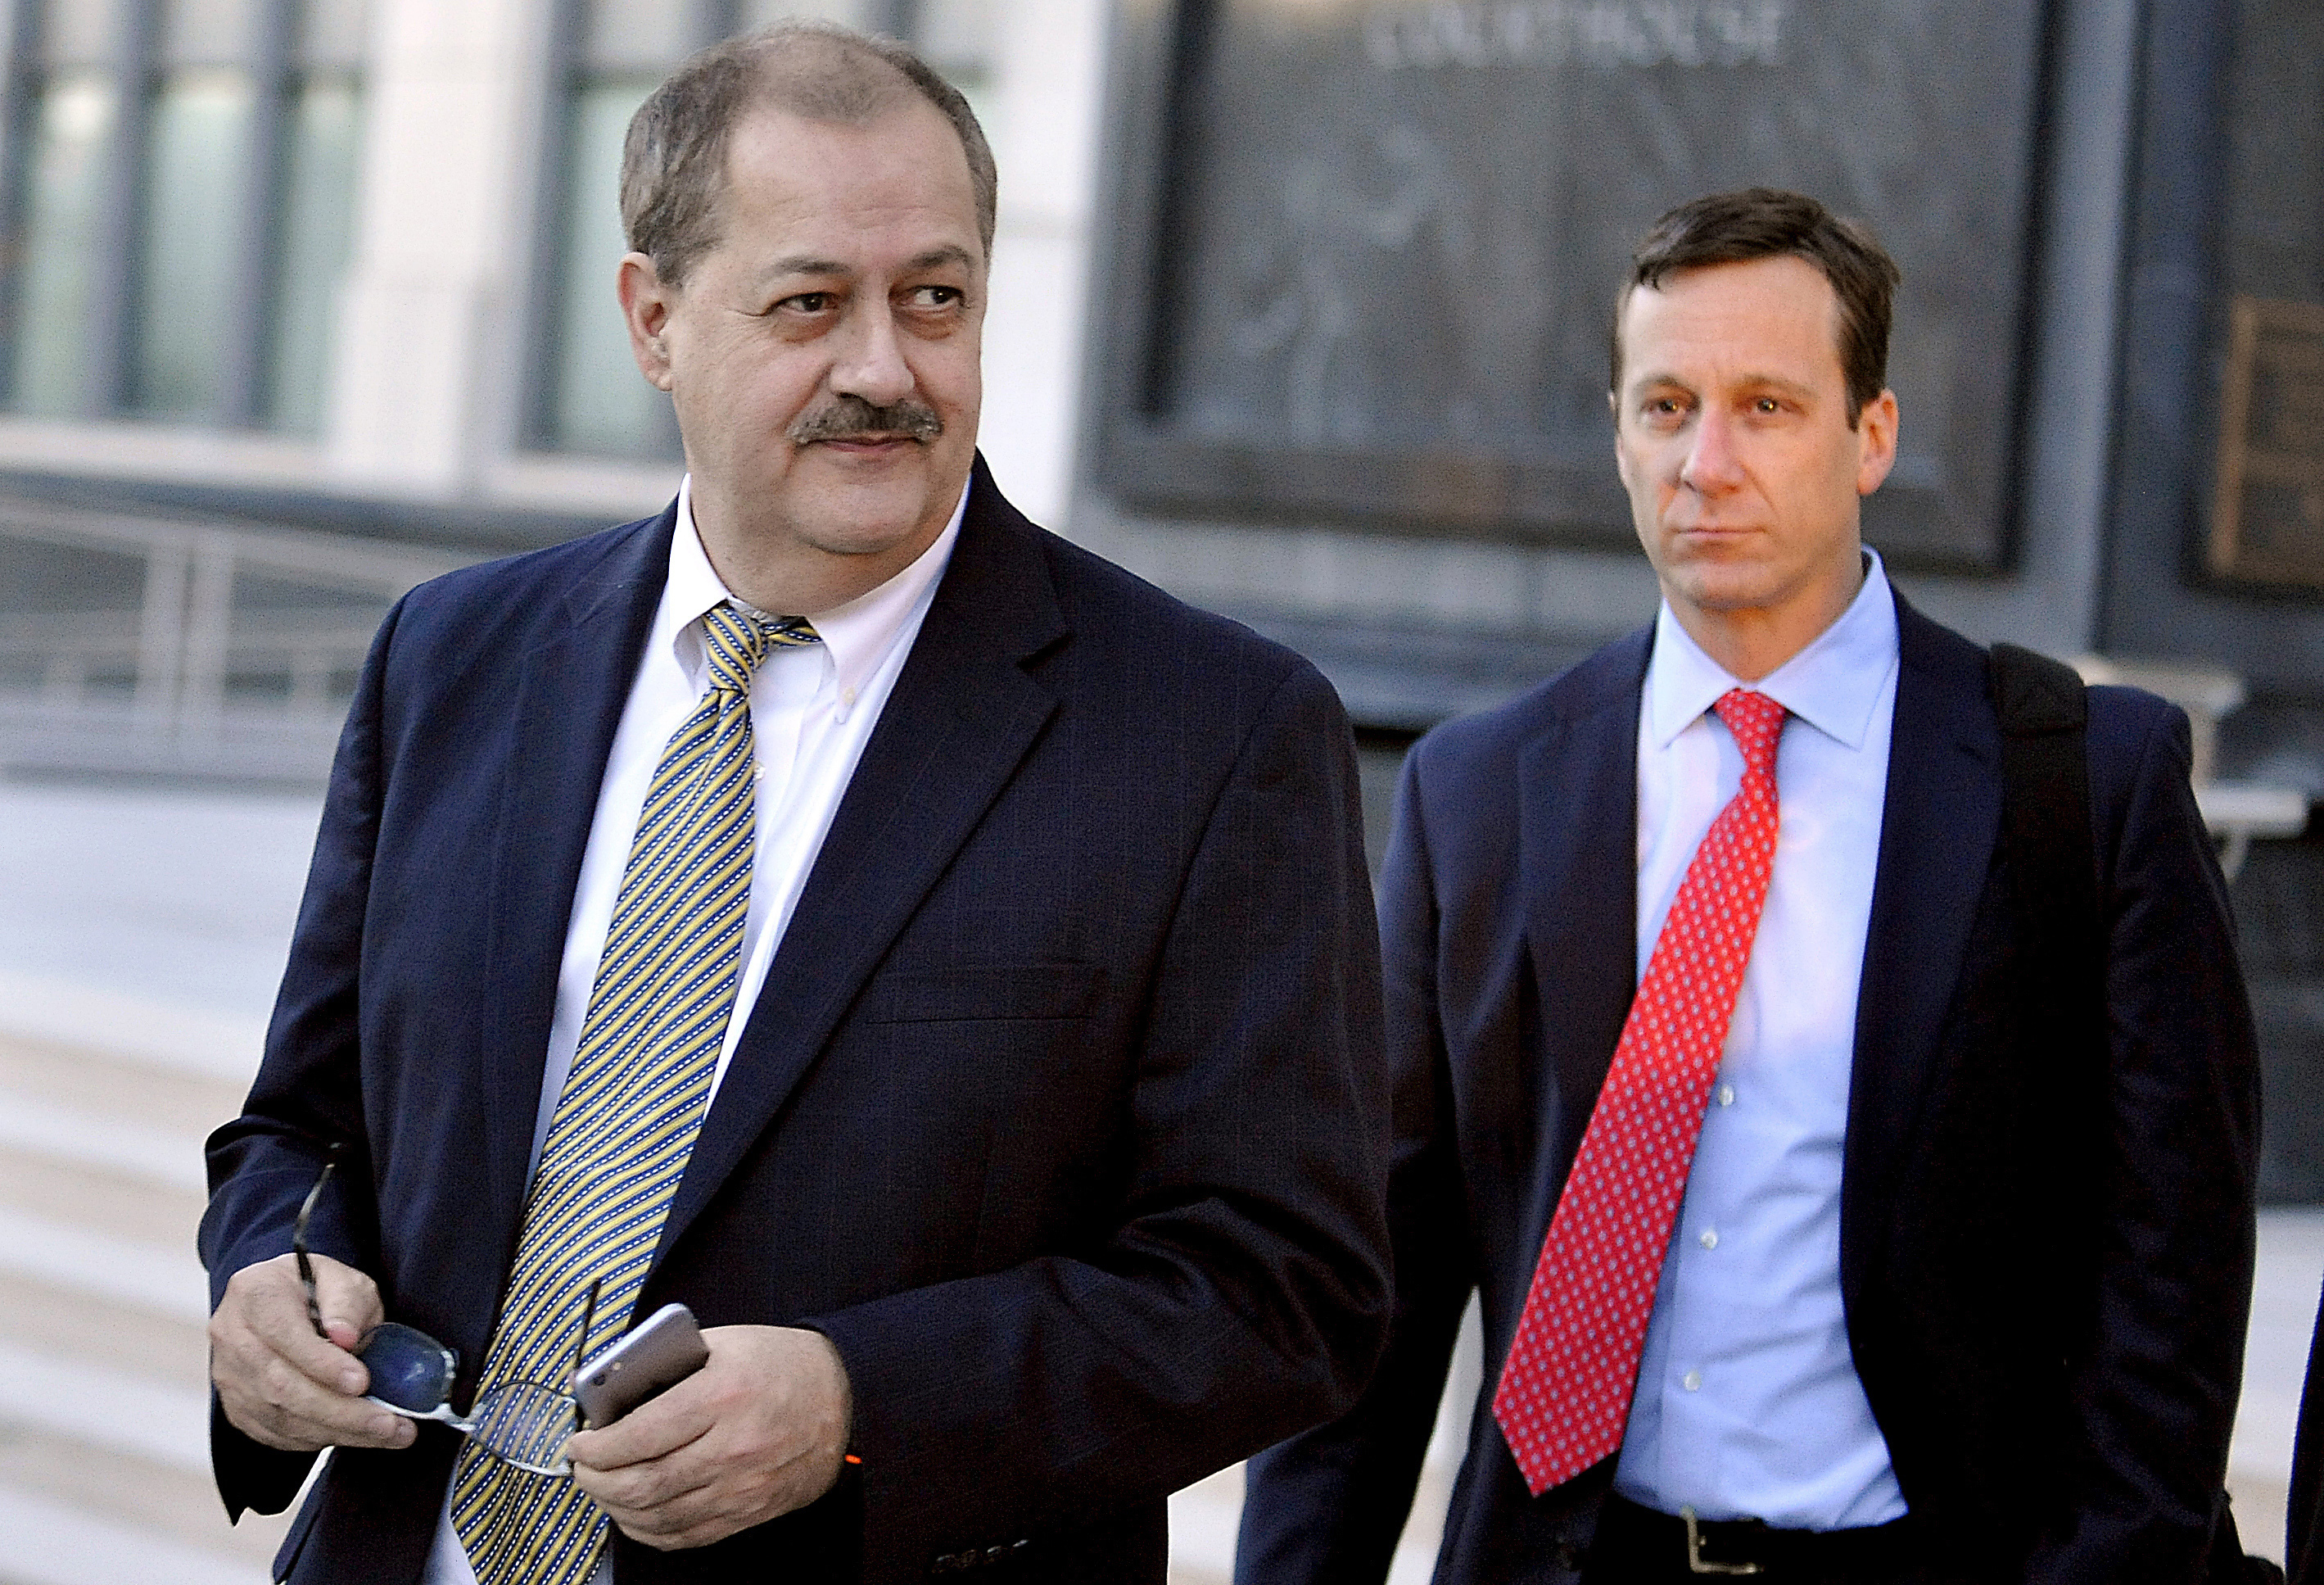 Mine Explosion-Prison Release In a Nov. 24, 2015, photo, former Massey Energy CEO Don Blankenship, left, walks out of the Robert C. Byrd U.S. Courthouse after the jury deliberated for a fifth full day in his trial, in Charleston, W. Va. Blankenship is finishing up his one-year federal prison sentence related to the deadliest U.S. mine explosion in four decades. According to the U.S. Bureau of Prisons website, Blankenship is set to be released Wednesday, May 10, 2017, from a halfway house in Phoenix. He must serve one year of supervised release.